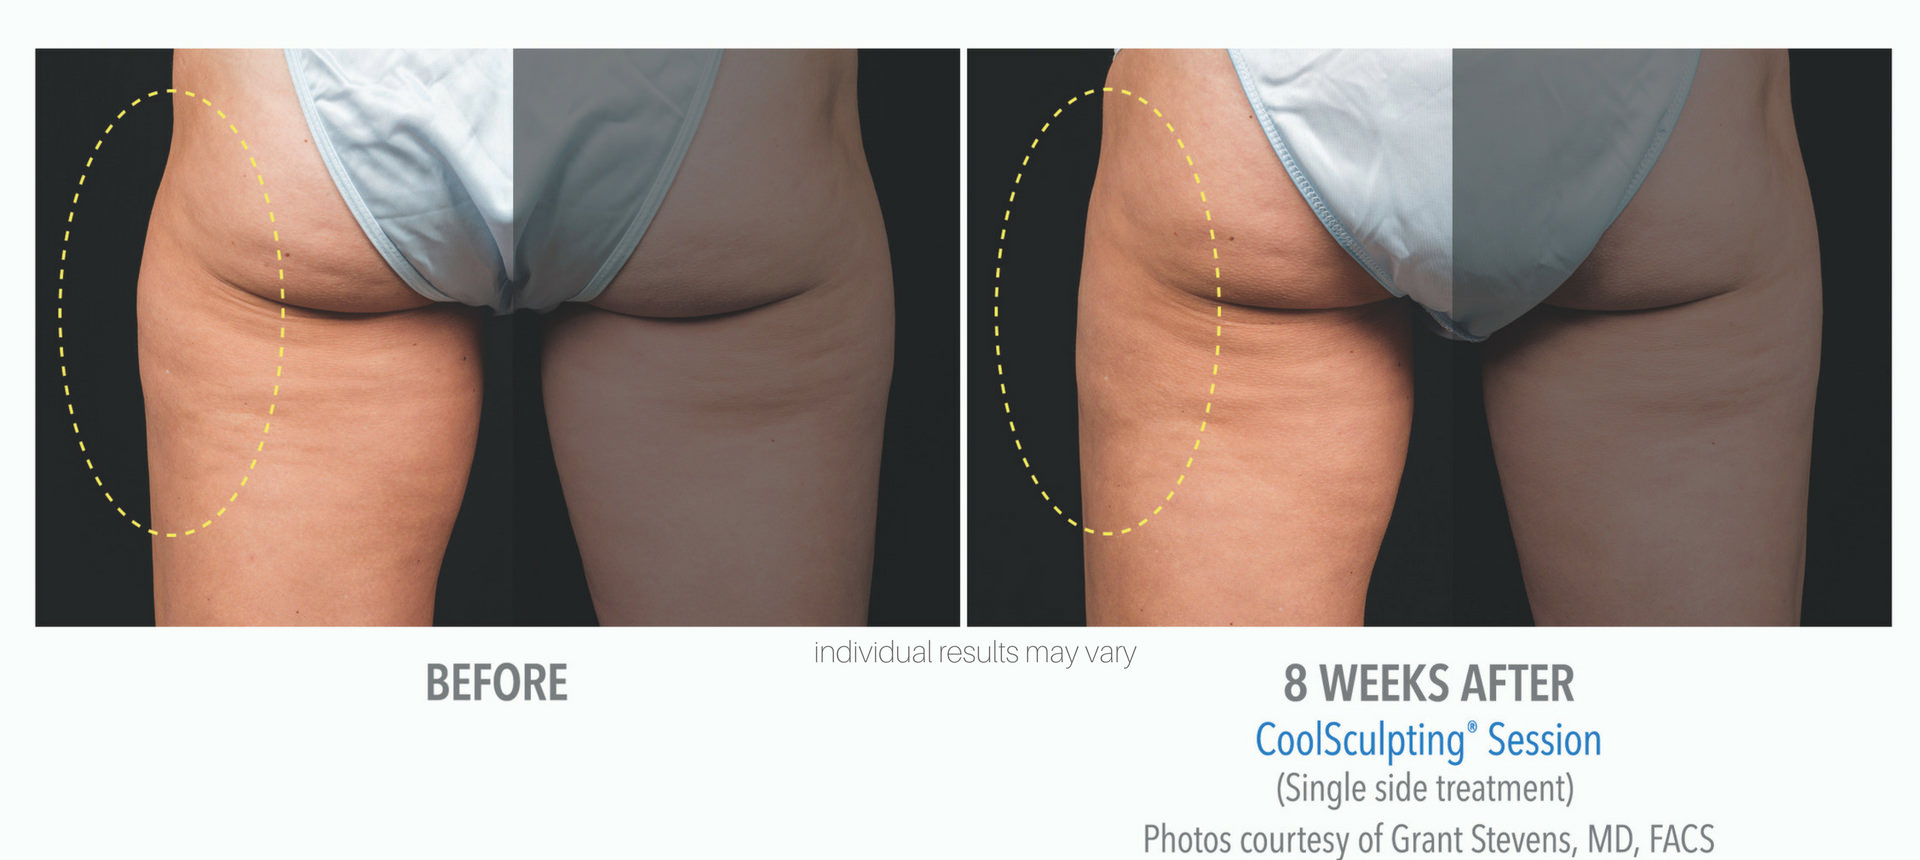 coolsculpting-before-and-after-photos-5